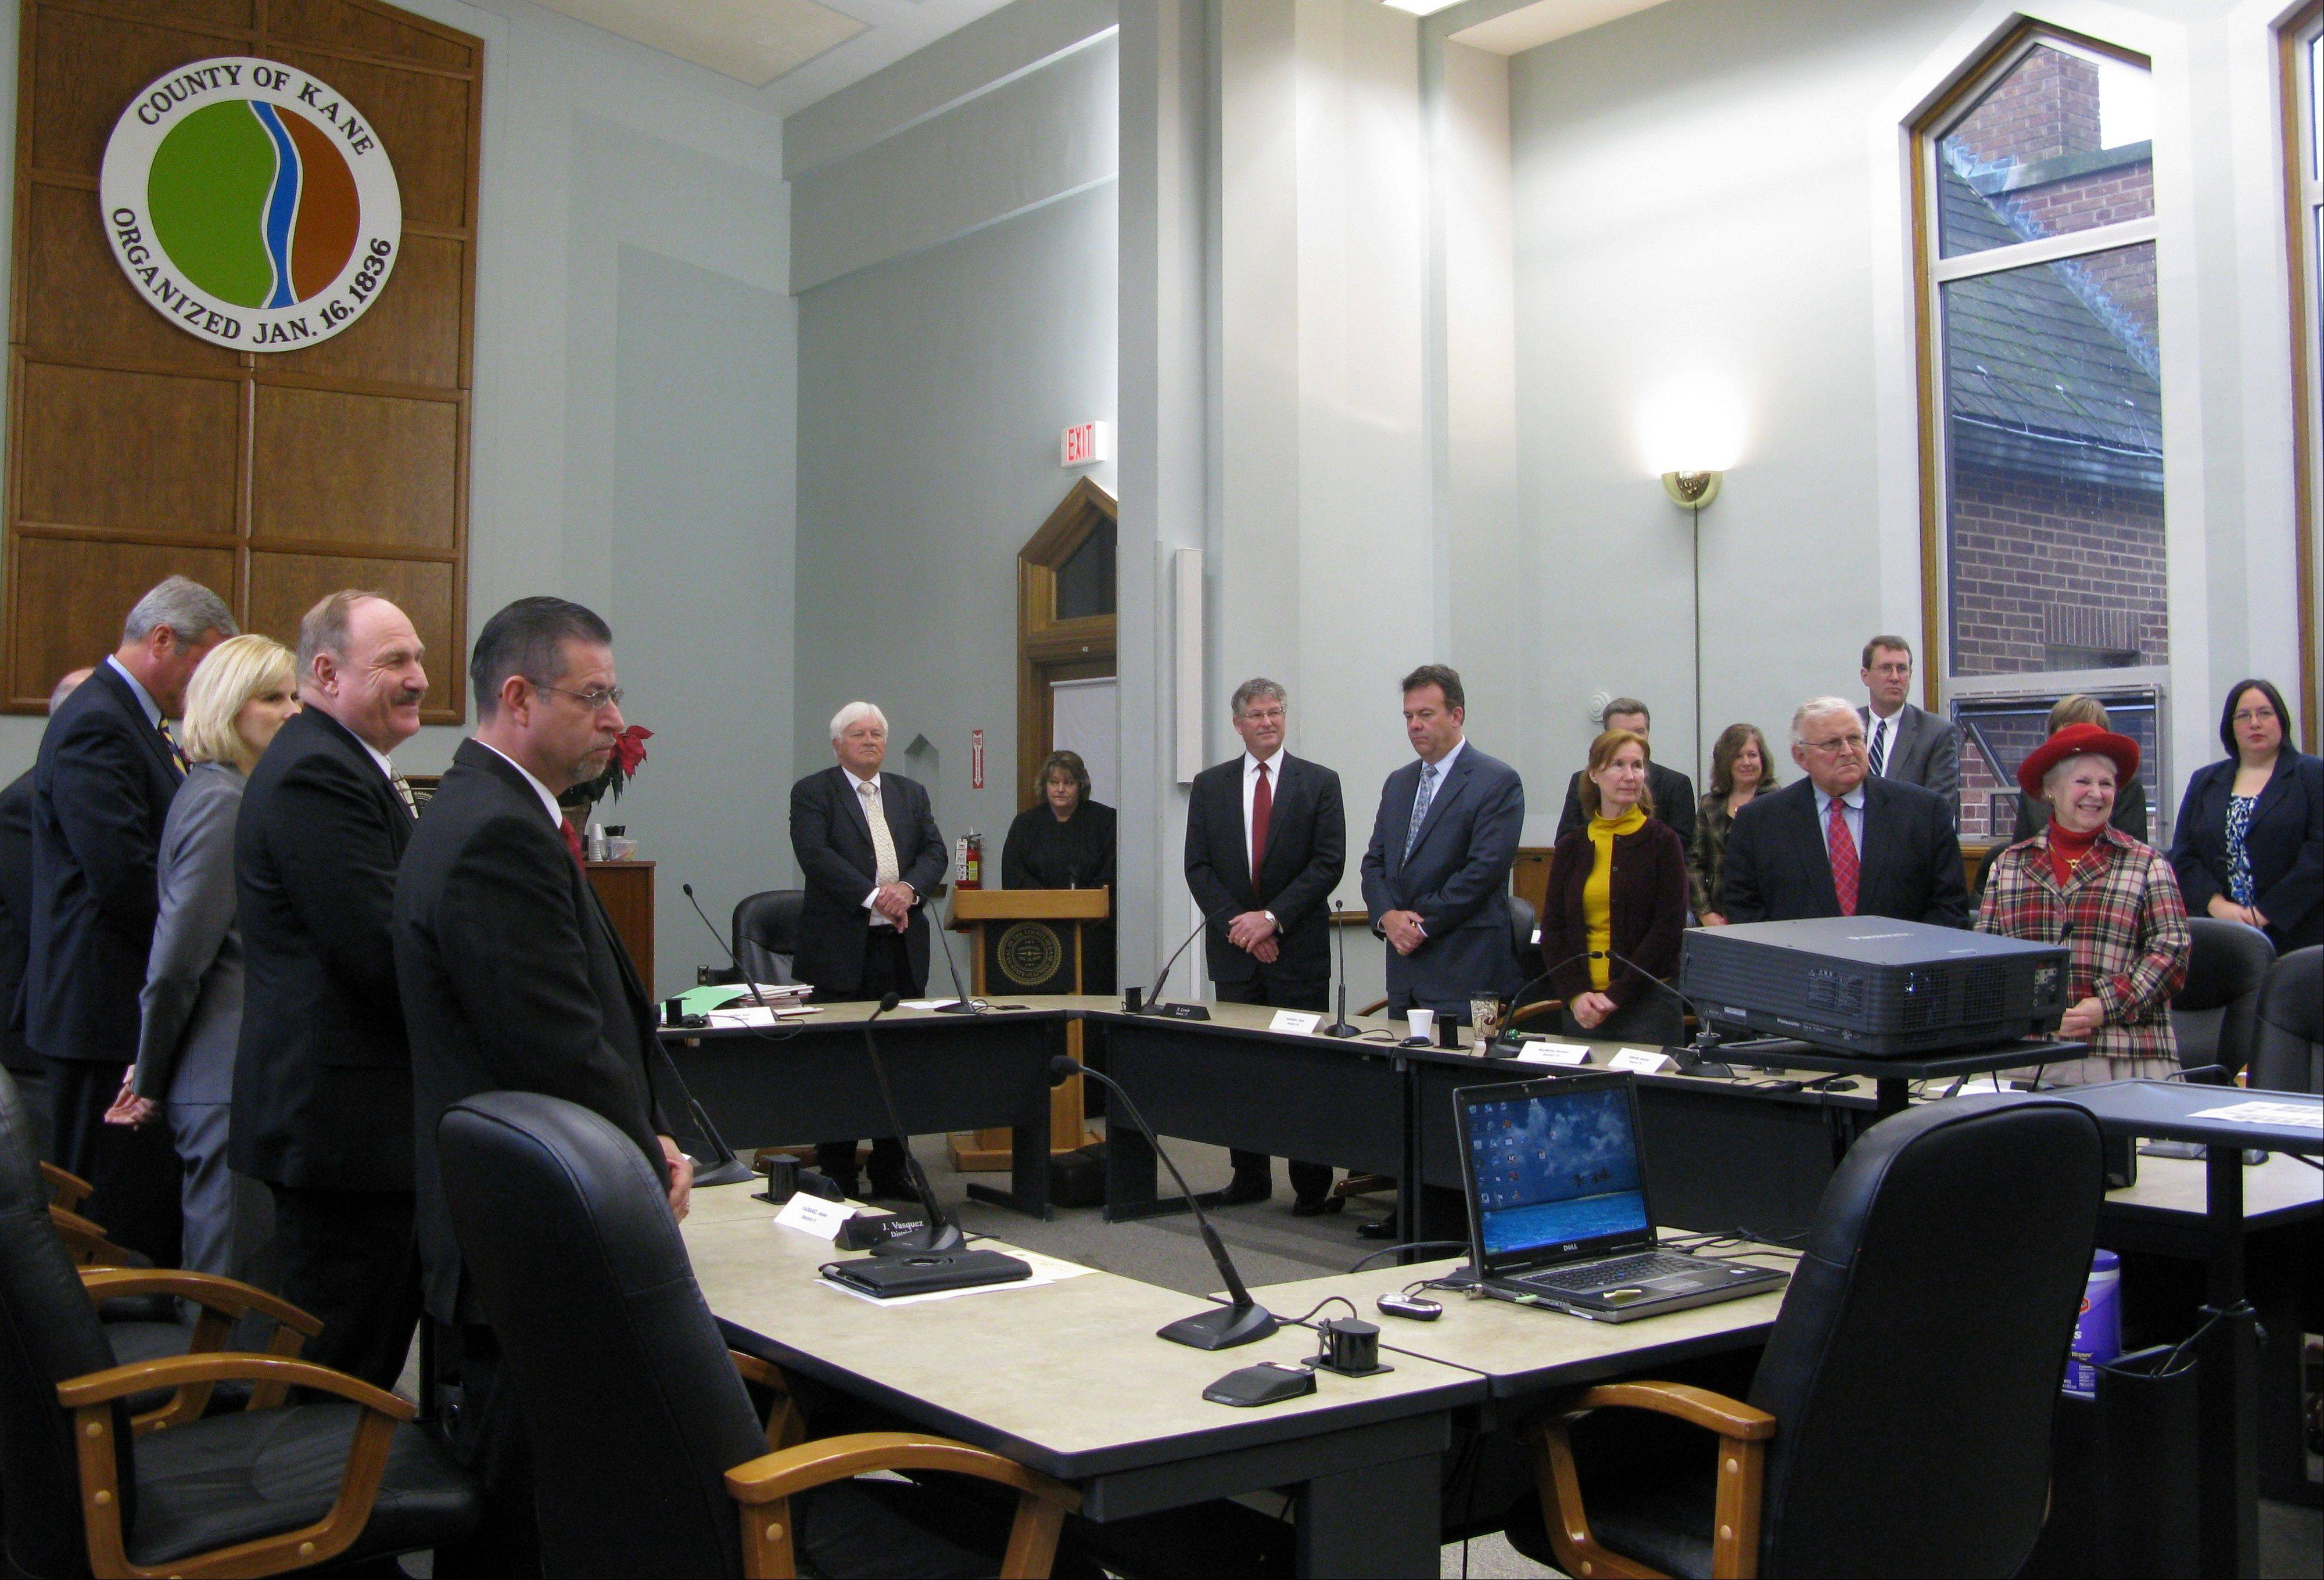 The new, 24-seat Kane County Board took its oath of office Monday morning with pep talk from Chairman Chris Lauzen.